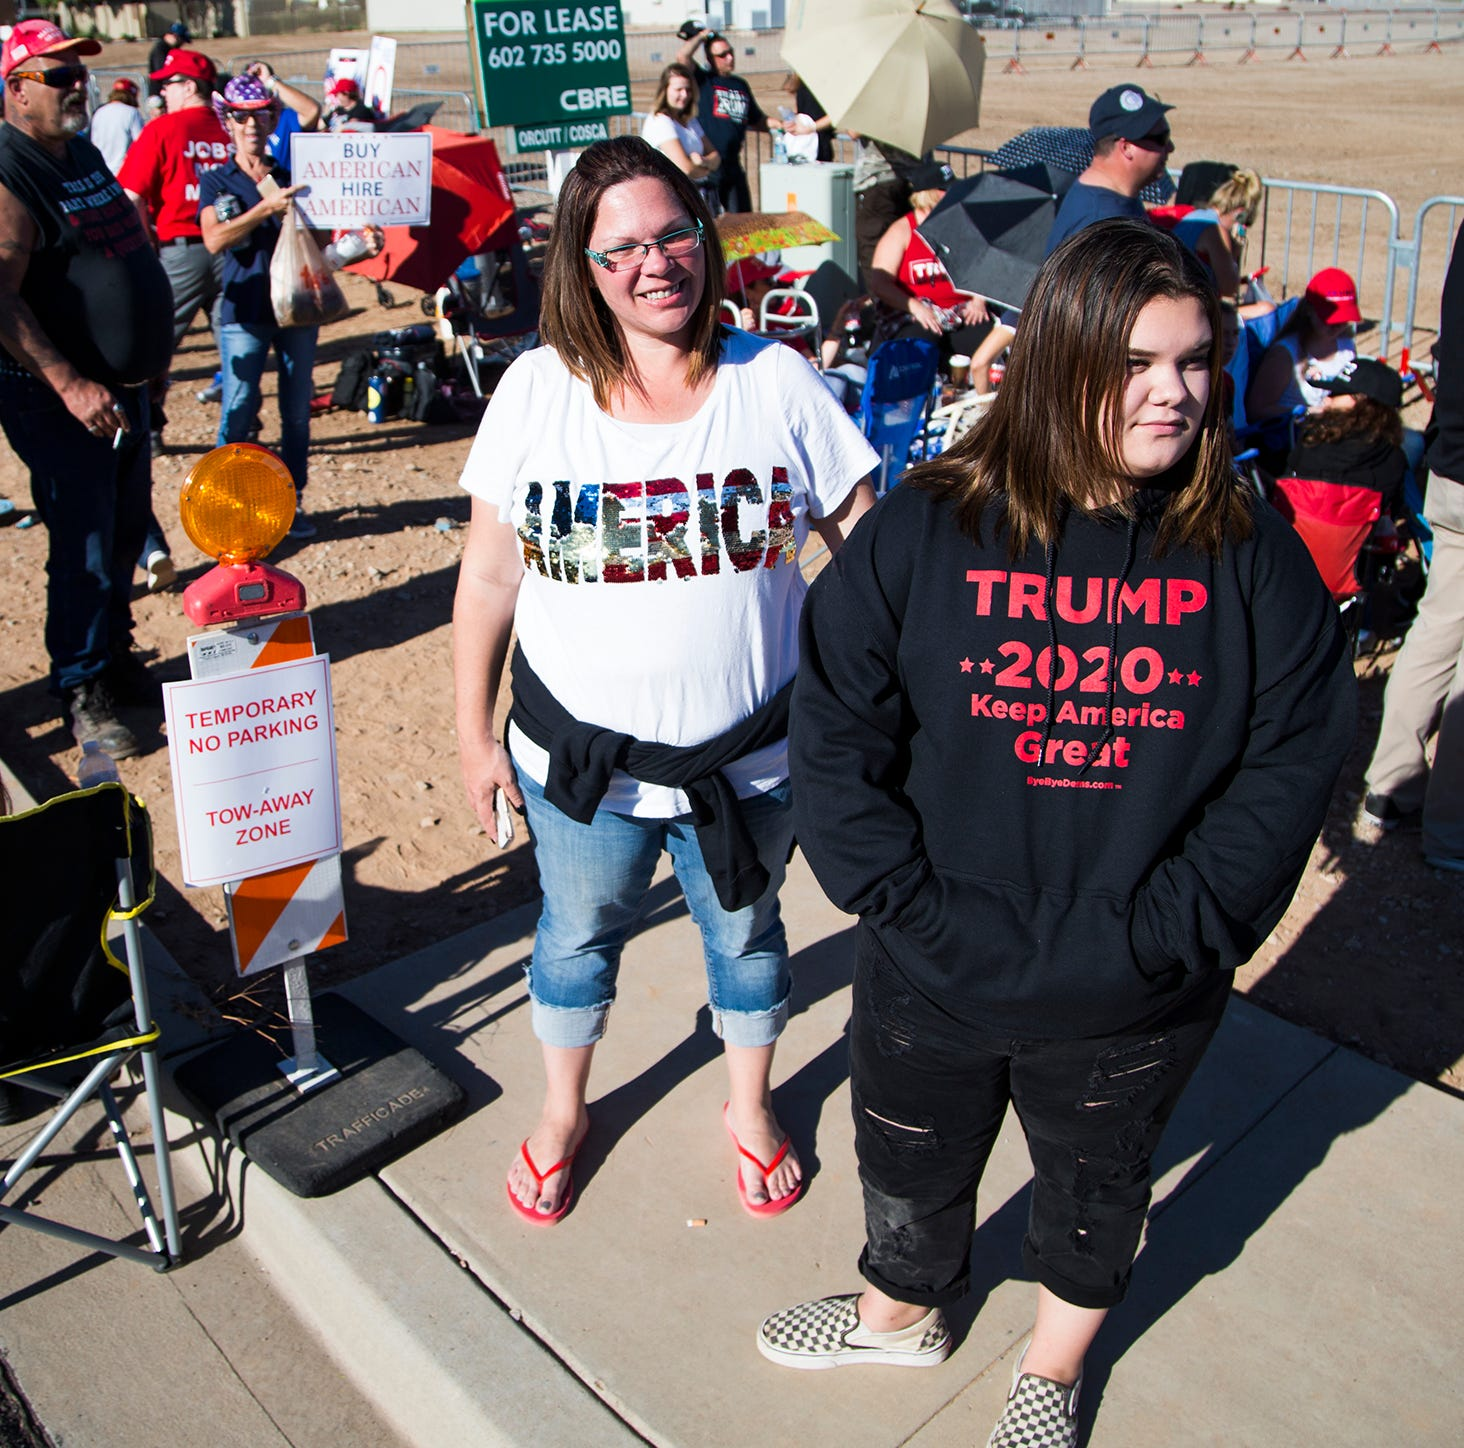 Trump in Arizona: Line to get into rally grows as people flock to airport